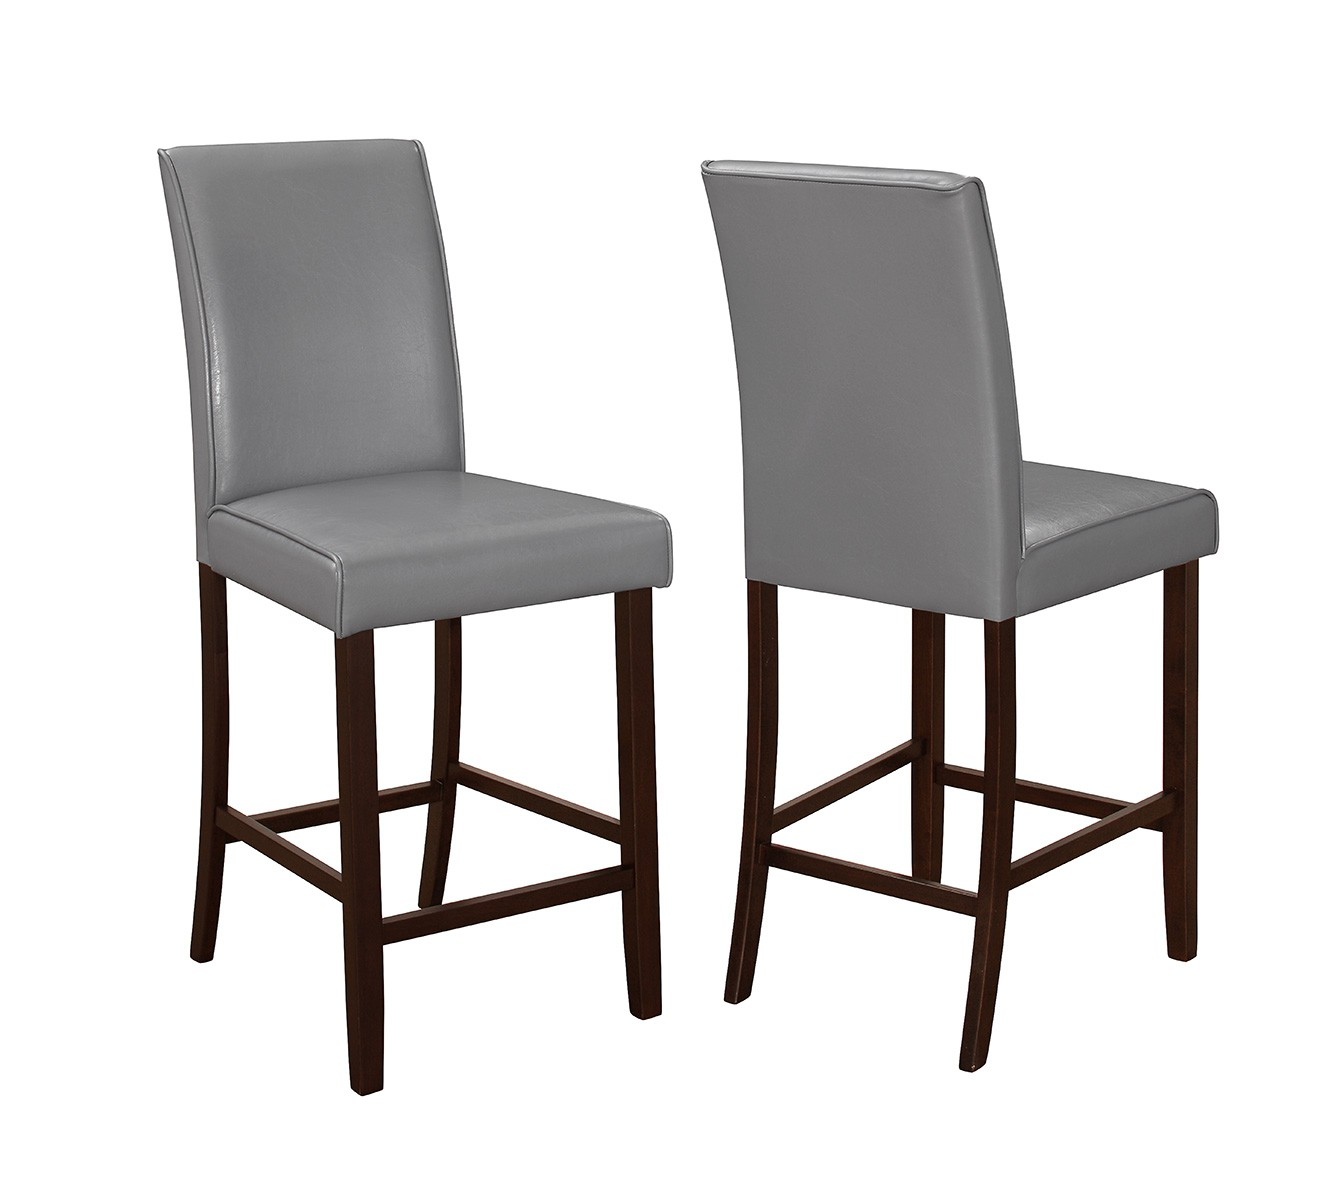 Counter Height Espresso Chairs : Coaster Fattori Counter Height Chair - Espresso/Grey Leatherette ...